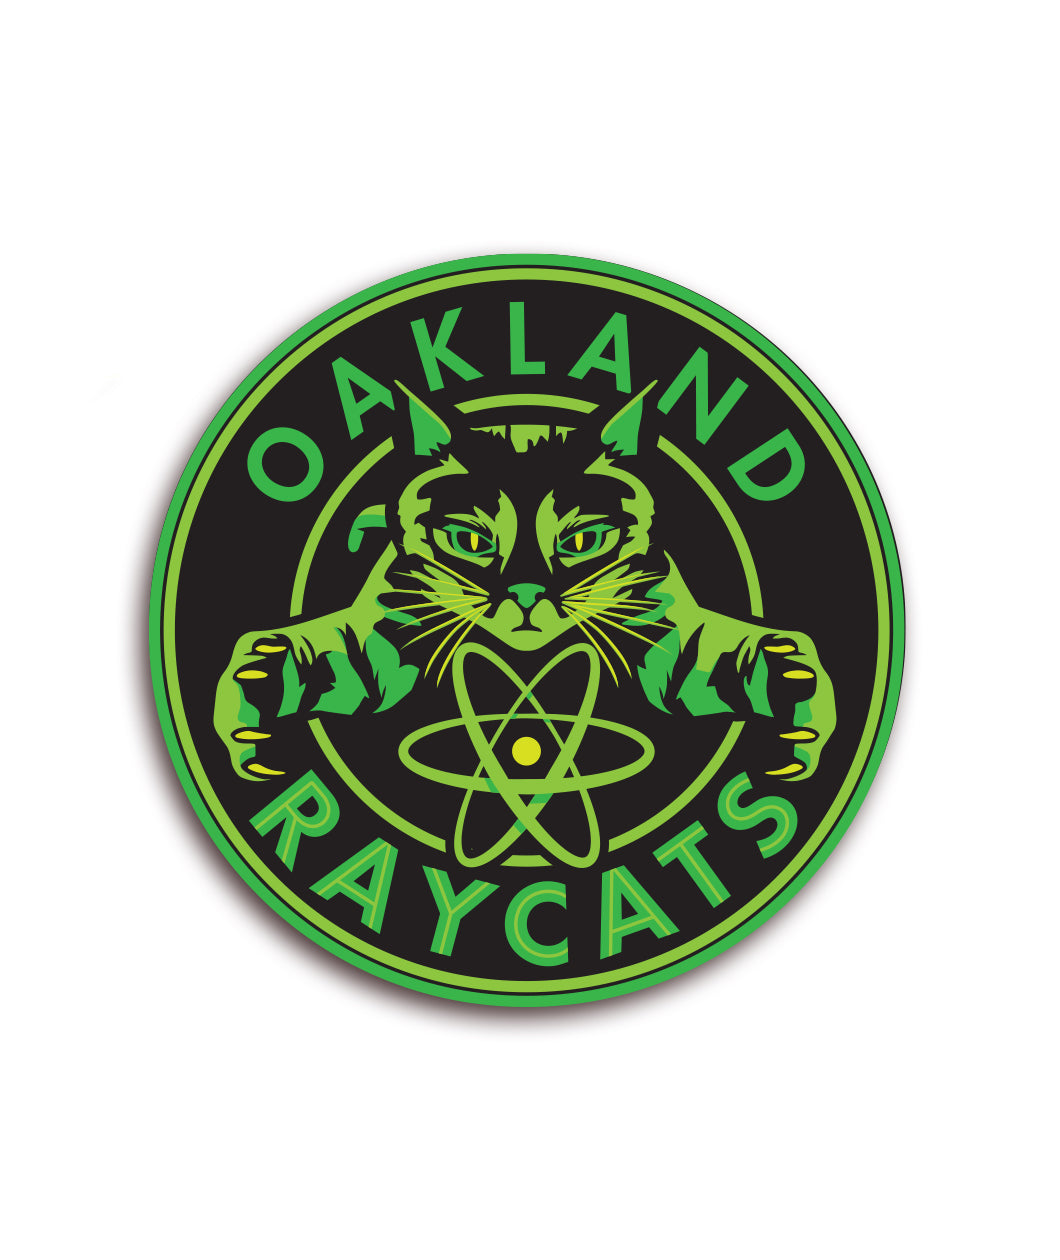 Oakland Raycats Decal